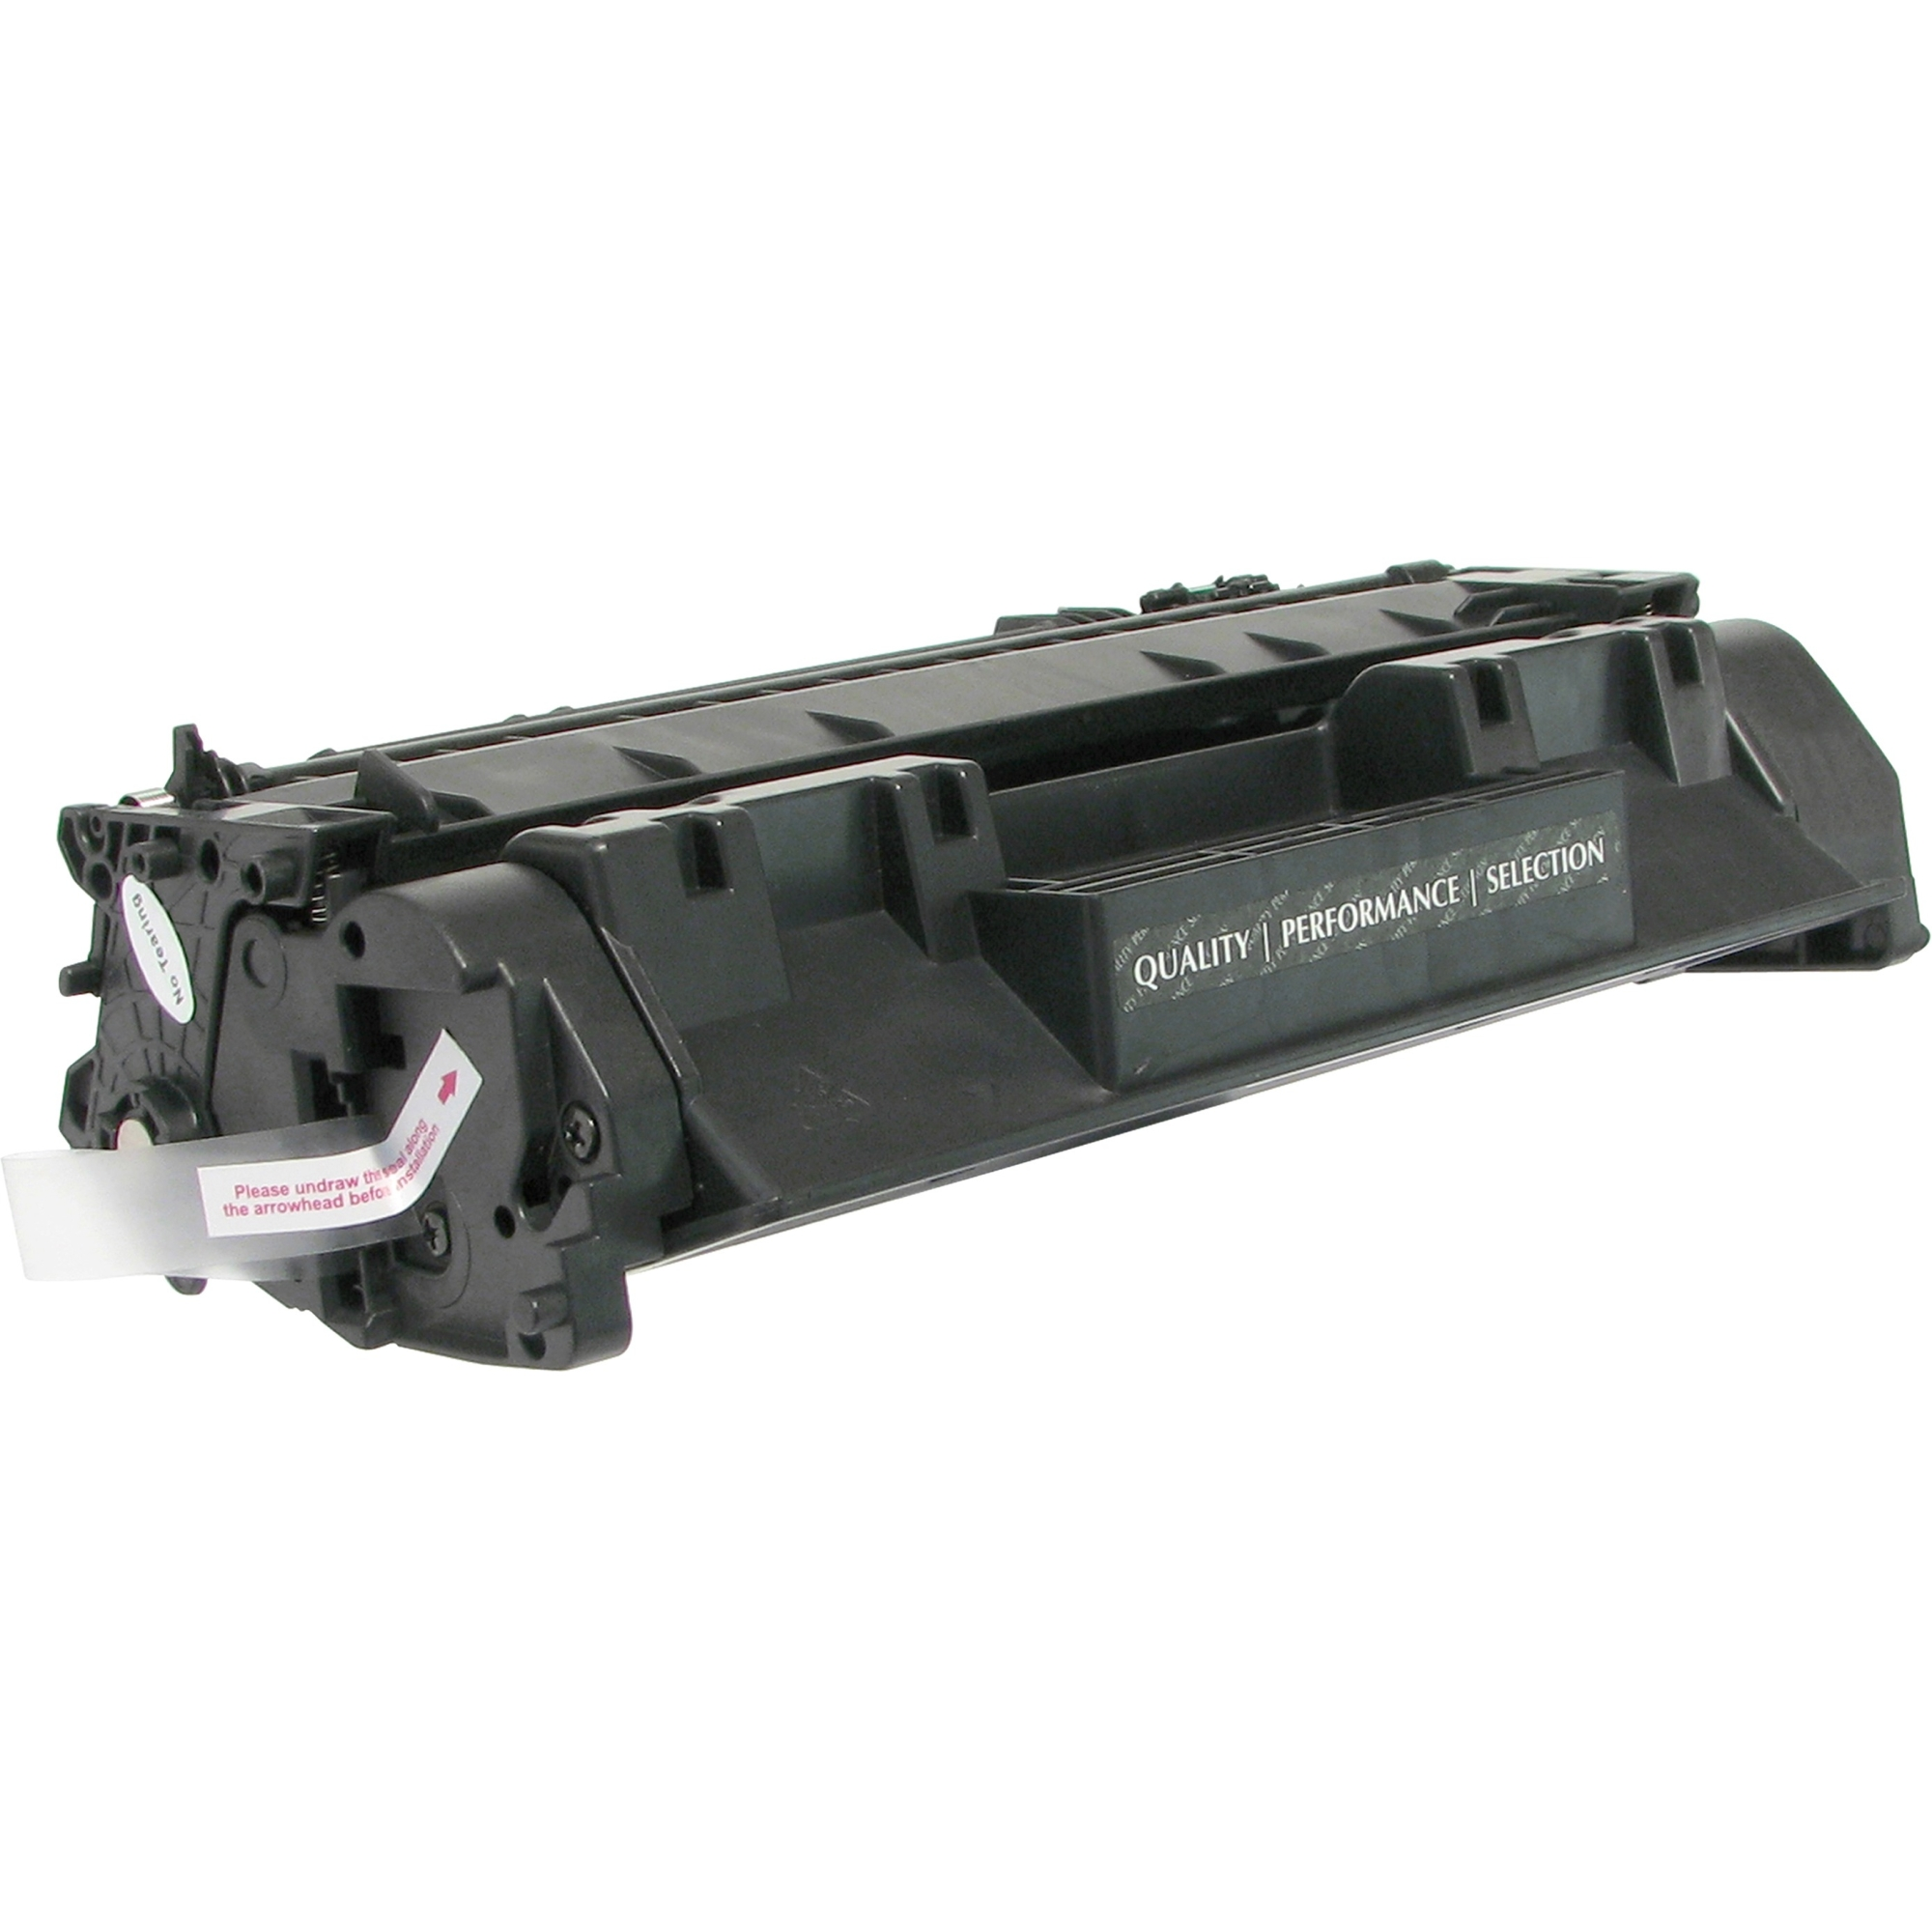 Toner Cartridge - Replacement for HP (CF280A) - Black - Laser - 2700 Page